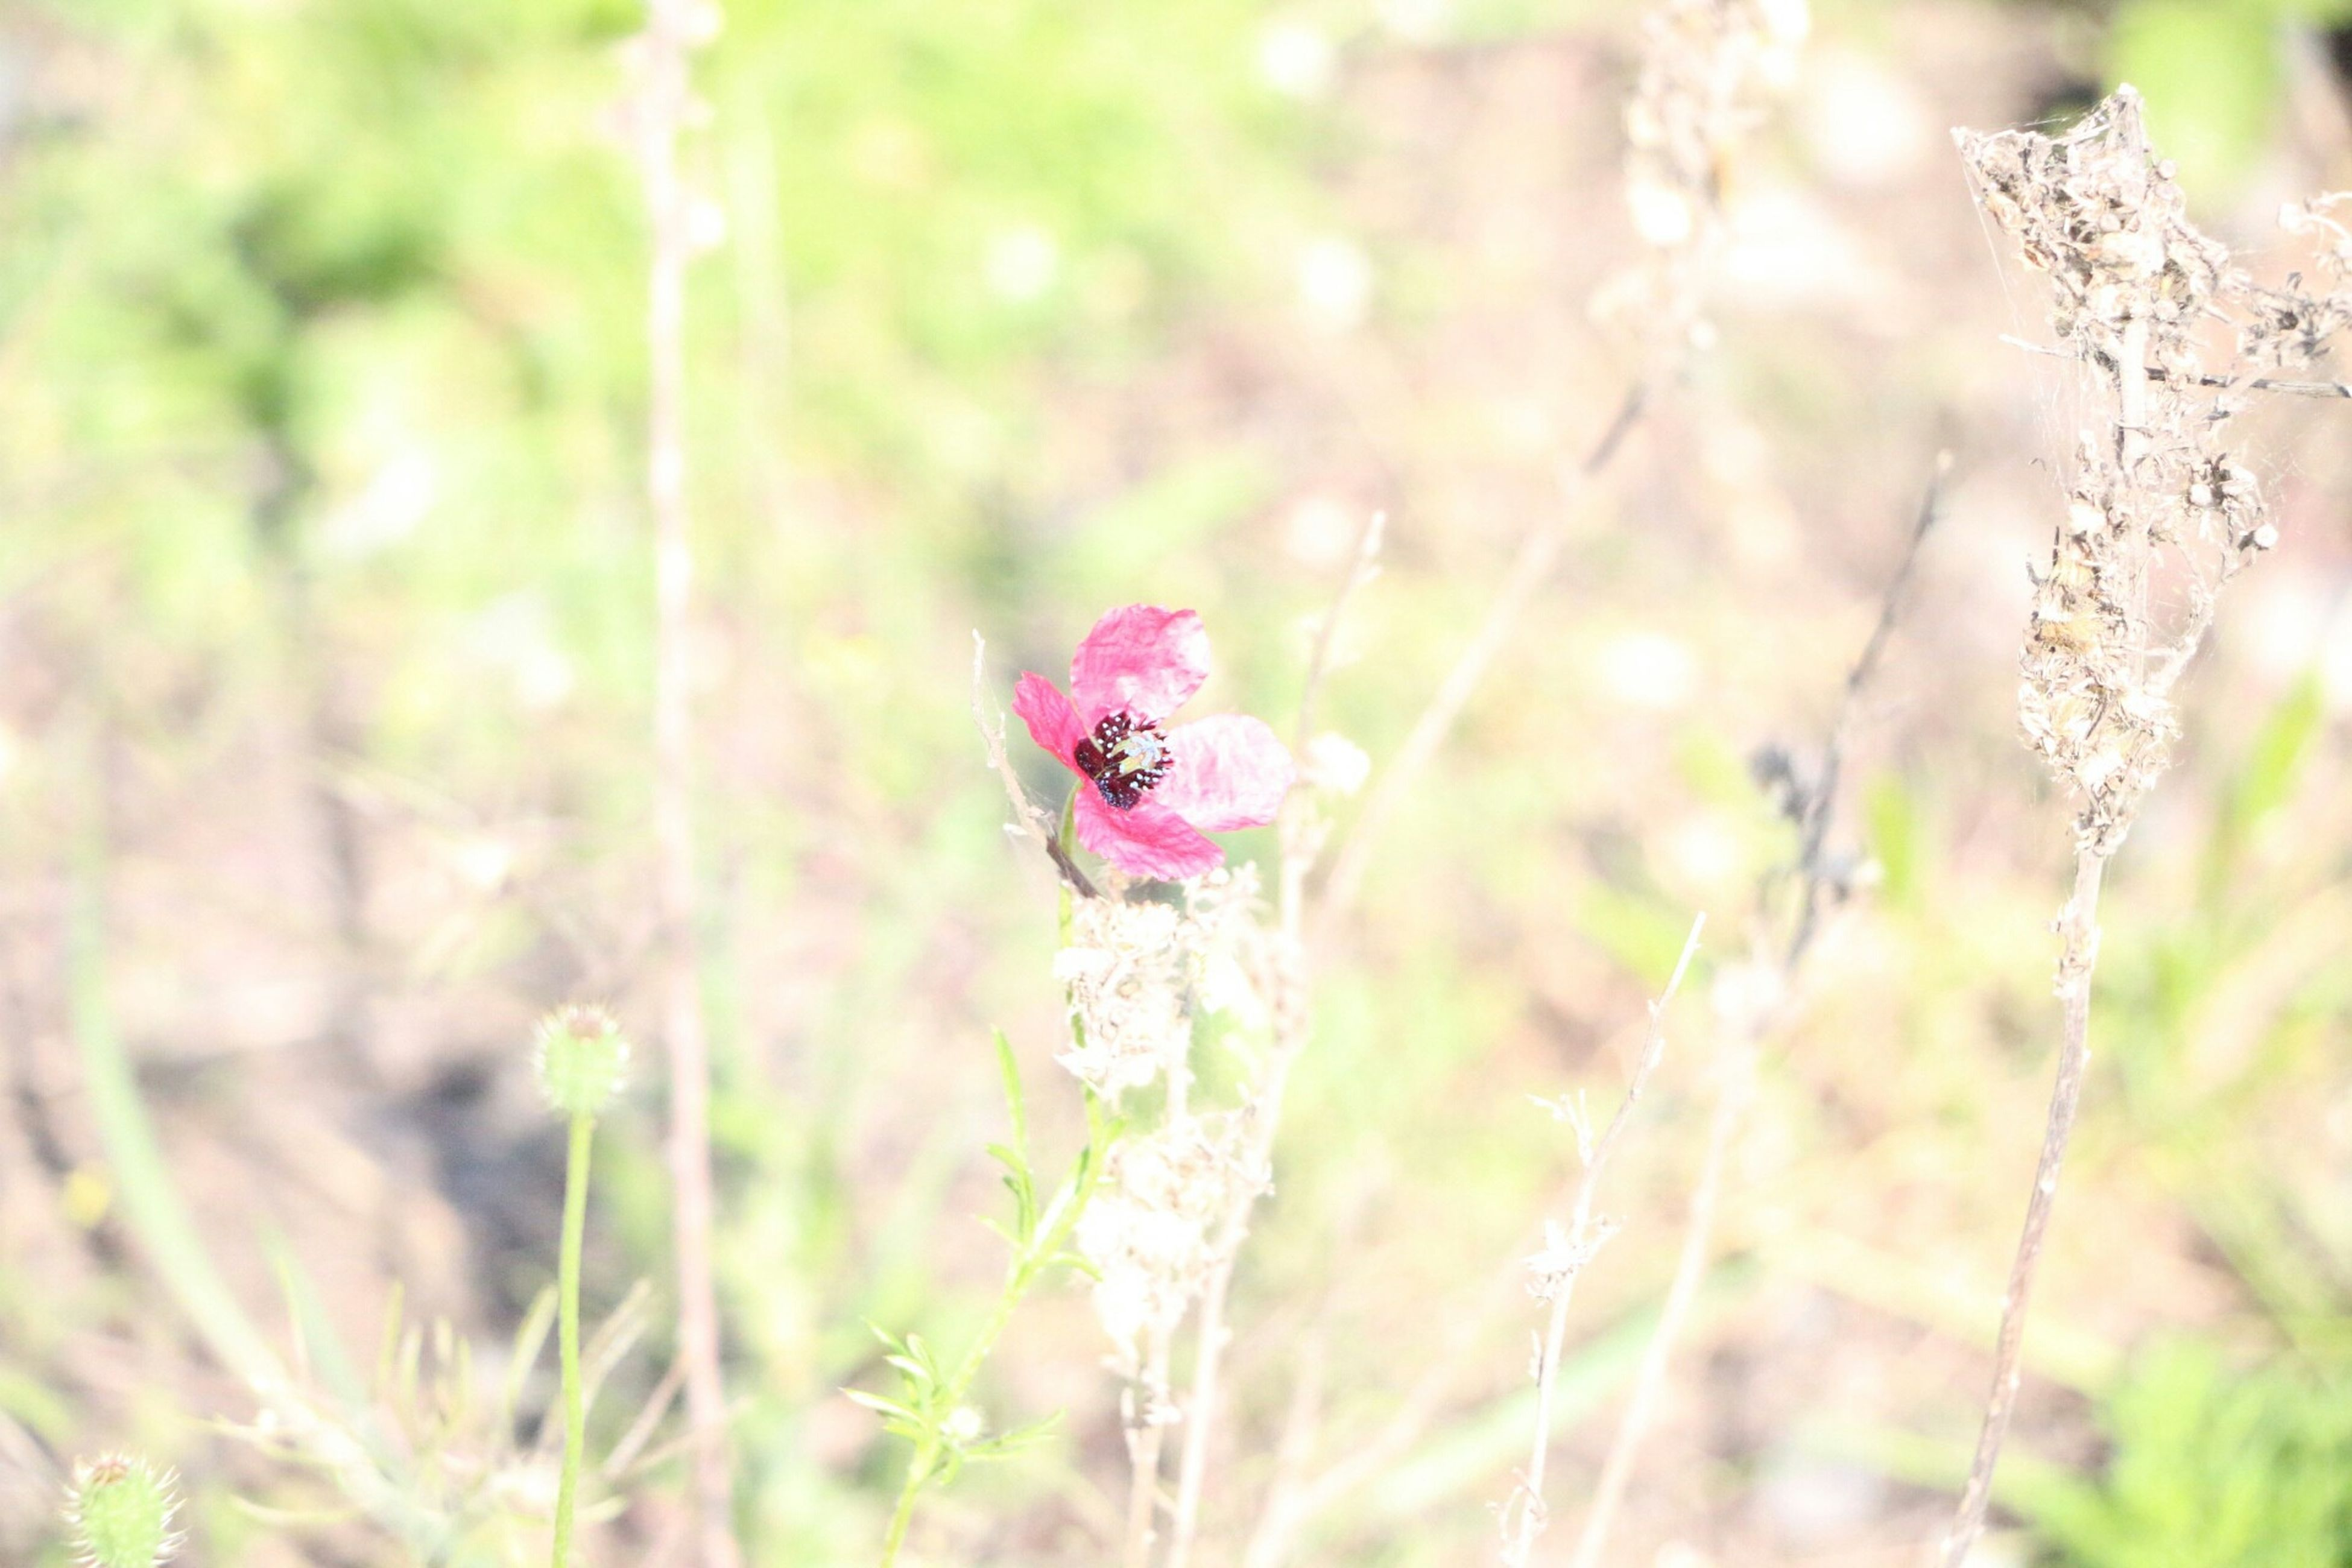 animal themes, one animal, flower, animals in the wild, wildlife, focus on foreground, growth, plant, selective focus, nature, field, insect, beauty in nature, close-up, freshness, fragility, stem, grass, day, outdoors